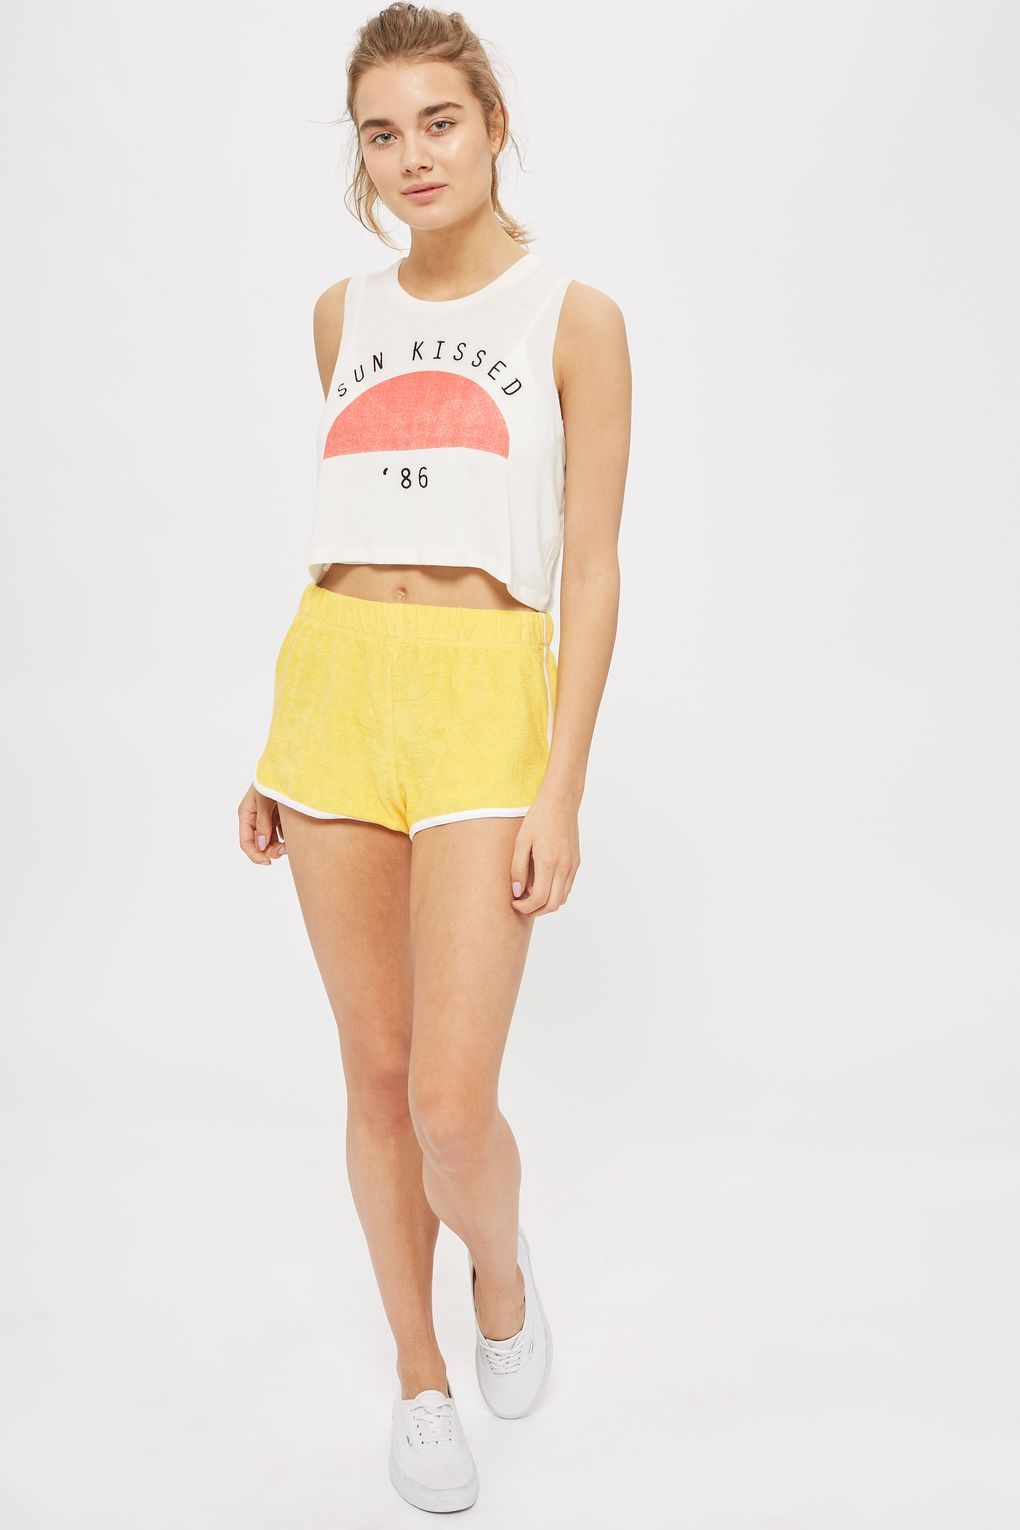 eb66ae46d02 Towelling Runner Shorts - New In Fashion - New In - Topshop Europe